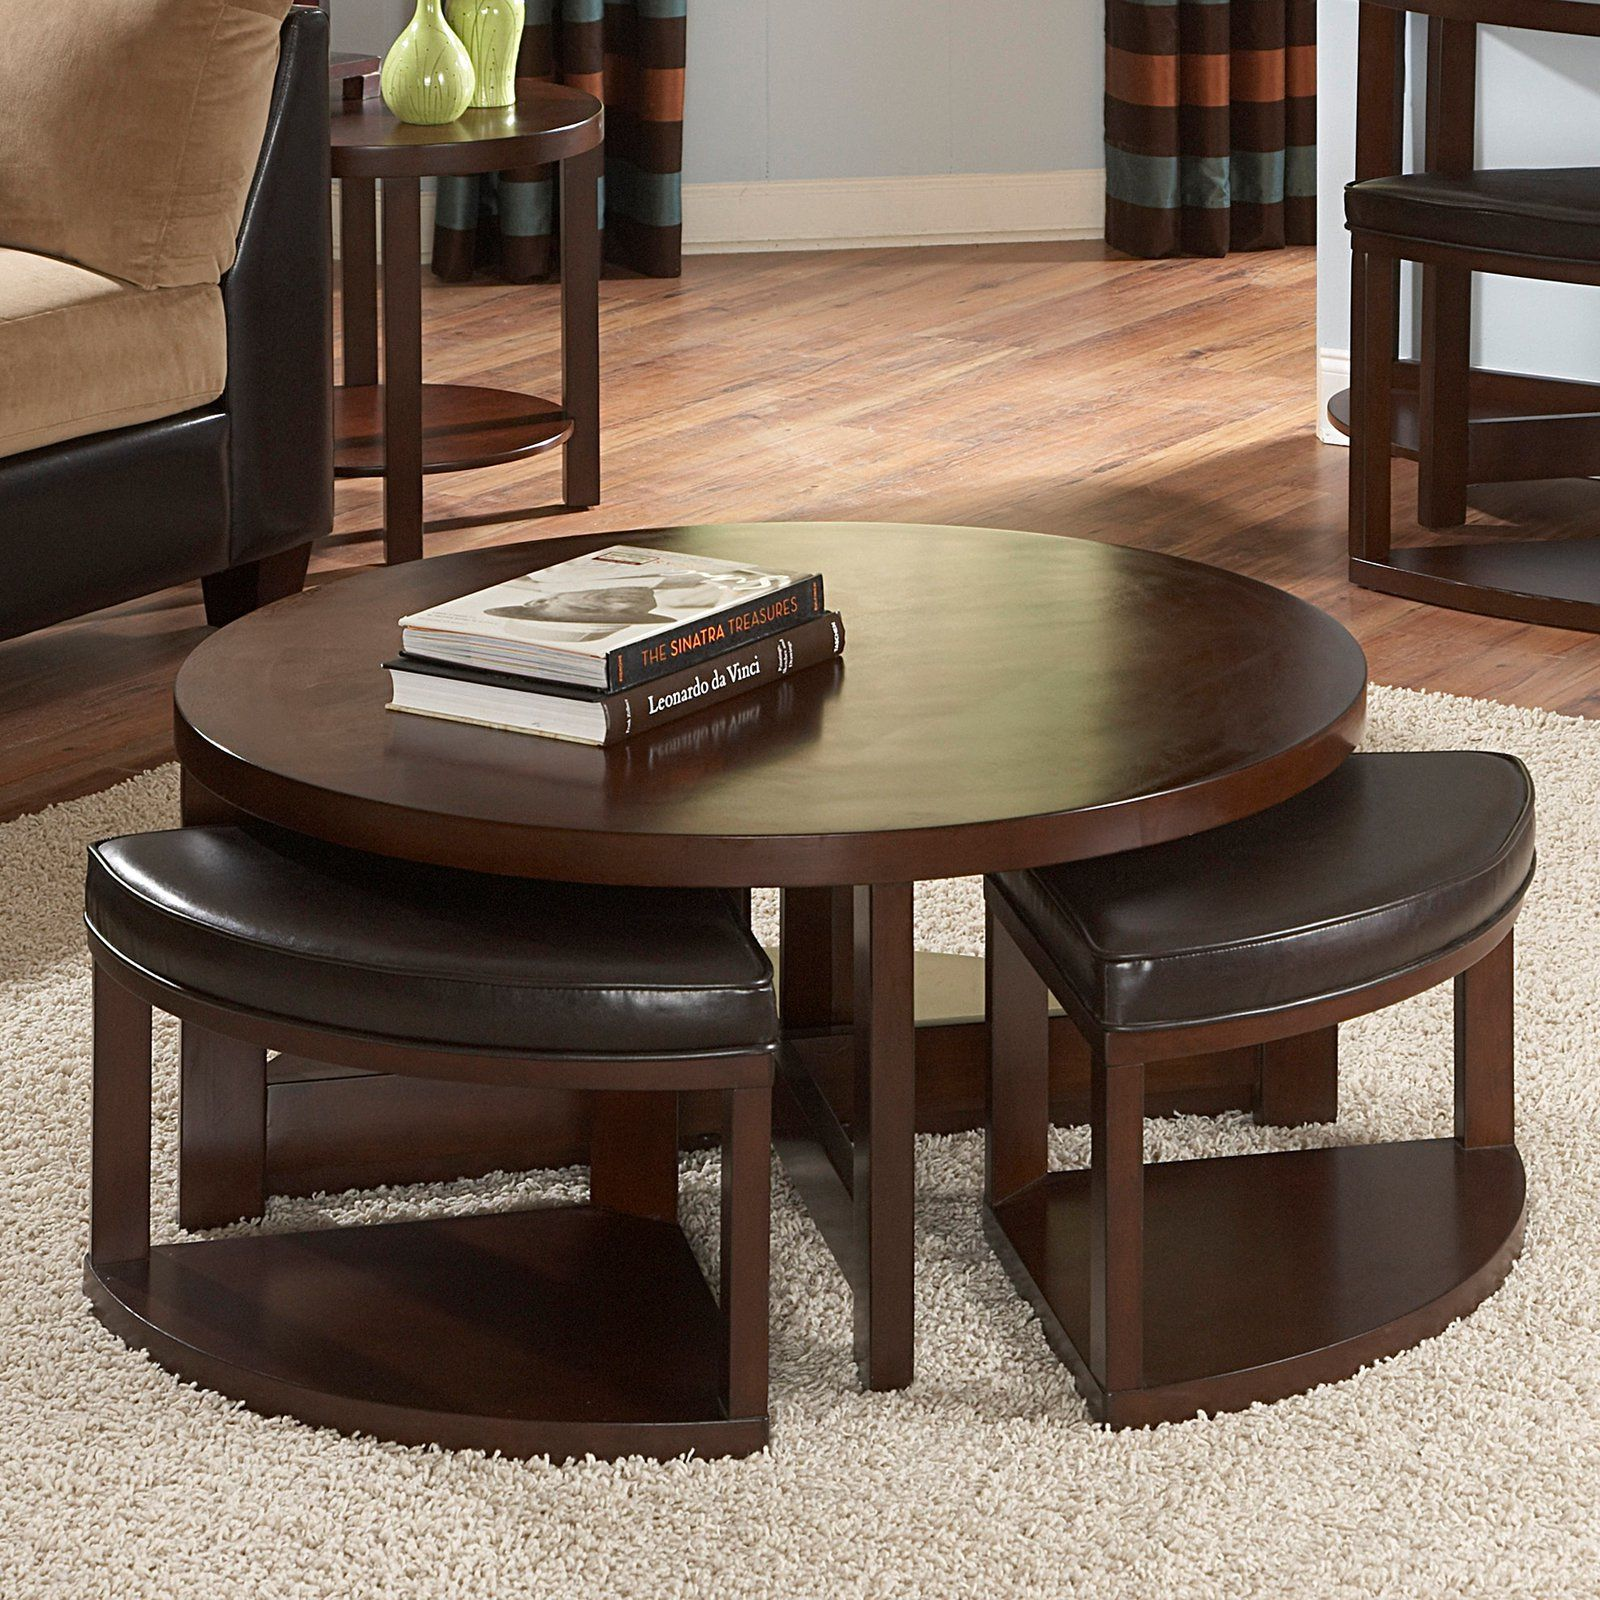 Weston Home Brussel II Round Brown Cherry Wood Coffee Table with 4